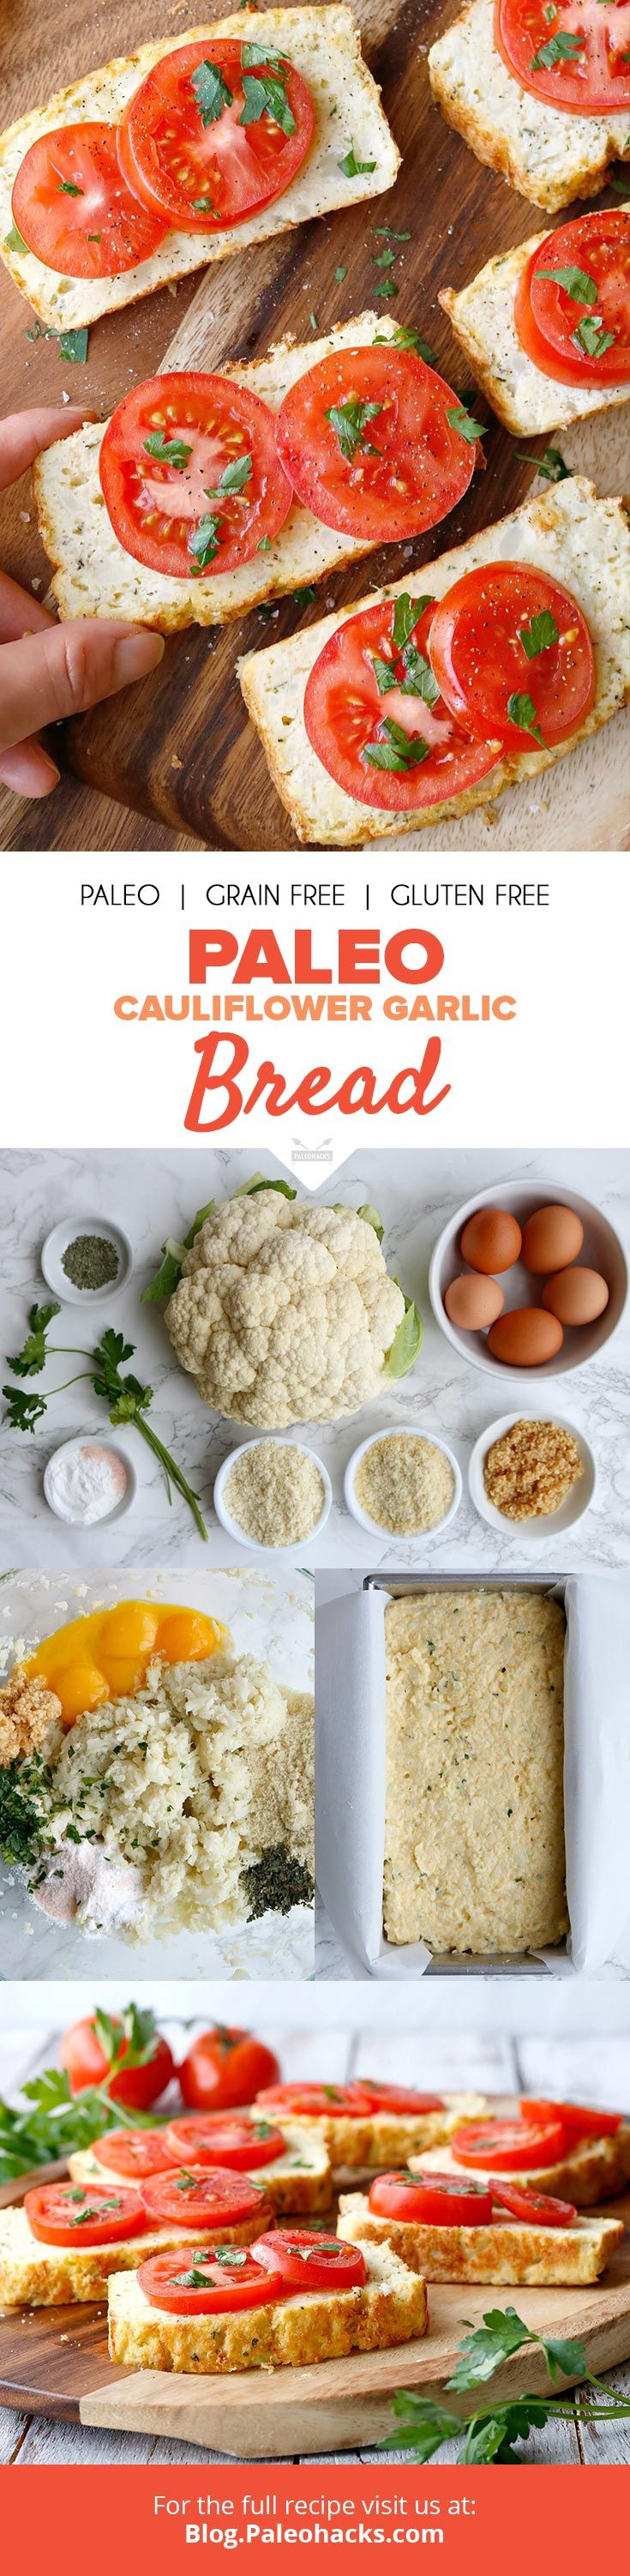 Slice up this fluffy, herb-rich garlic bread made from whipped eggs and healthy cauliflower! Get the full recipe here: http://paleo.co/cauligarlicbread